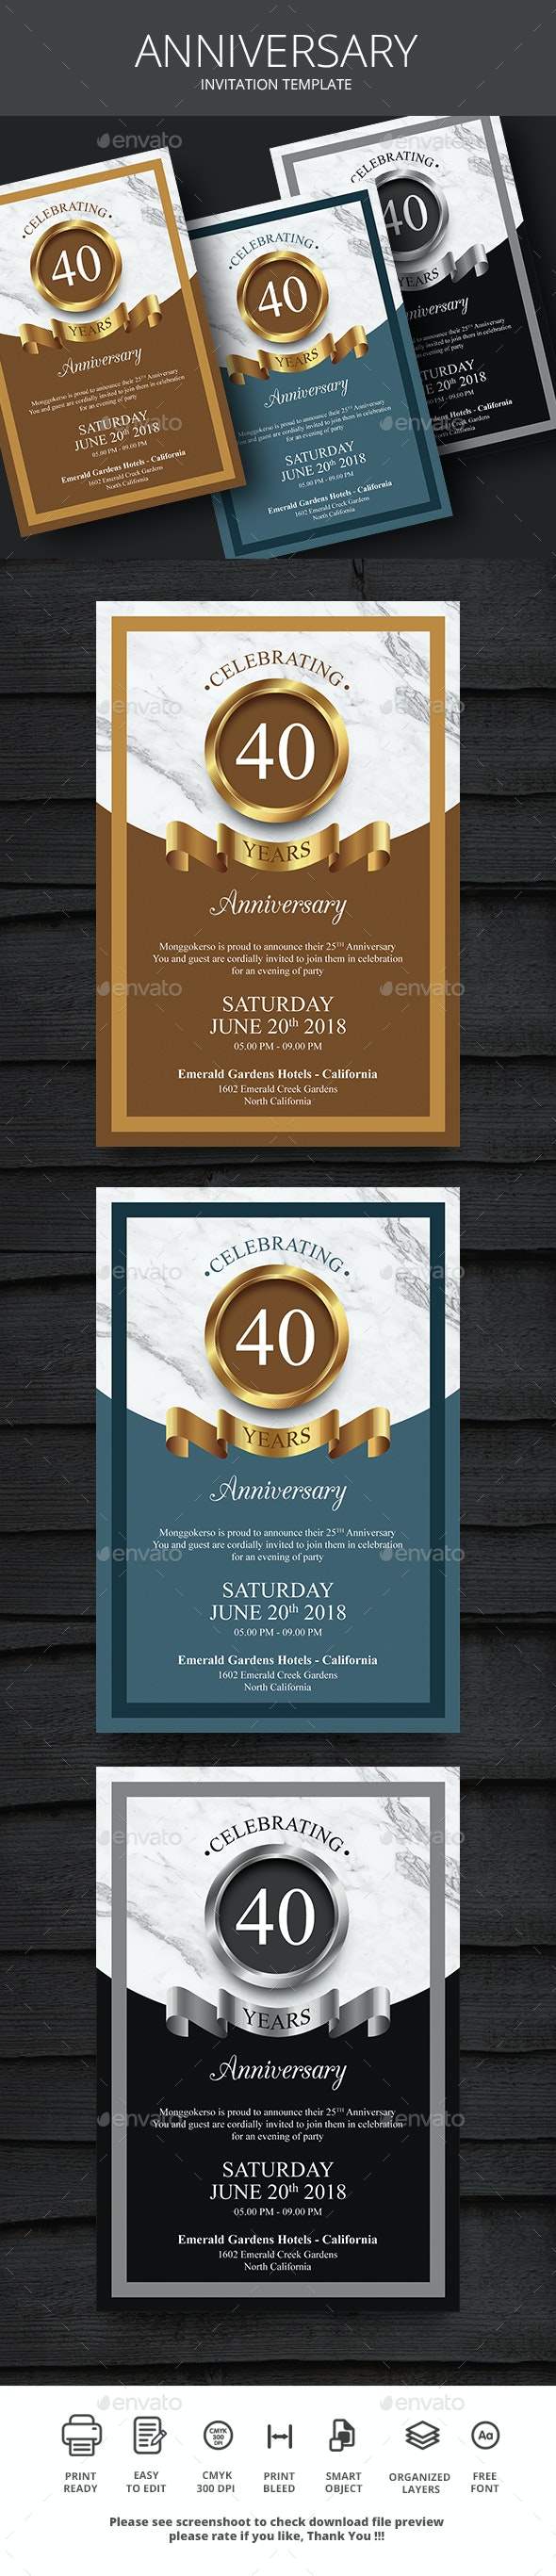 Anniversary - Events Flyers